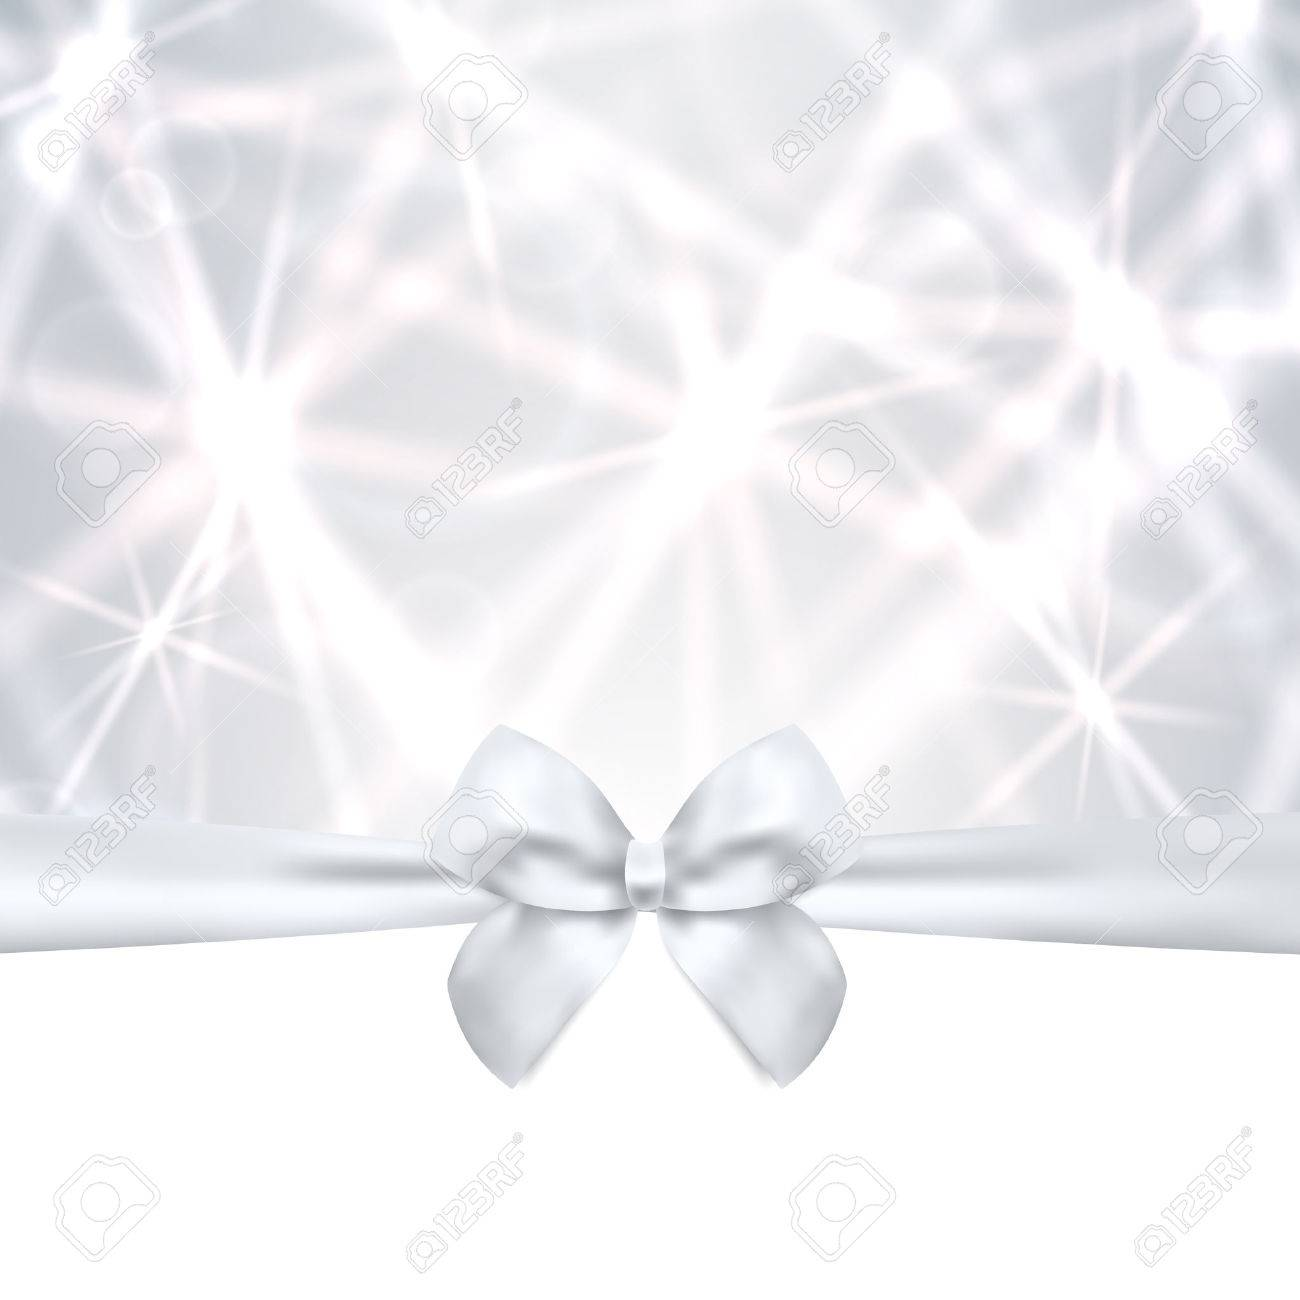 Holiday card, Christmas card, Birthday card, Gift card  greeting card  silver template with bow, ribbon  present , sparkling, twinkling stars  Celebration background design for invitation Stock Vector - 23041625